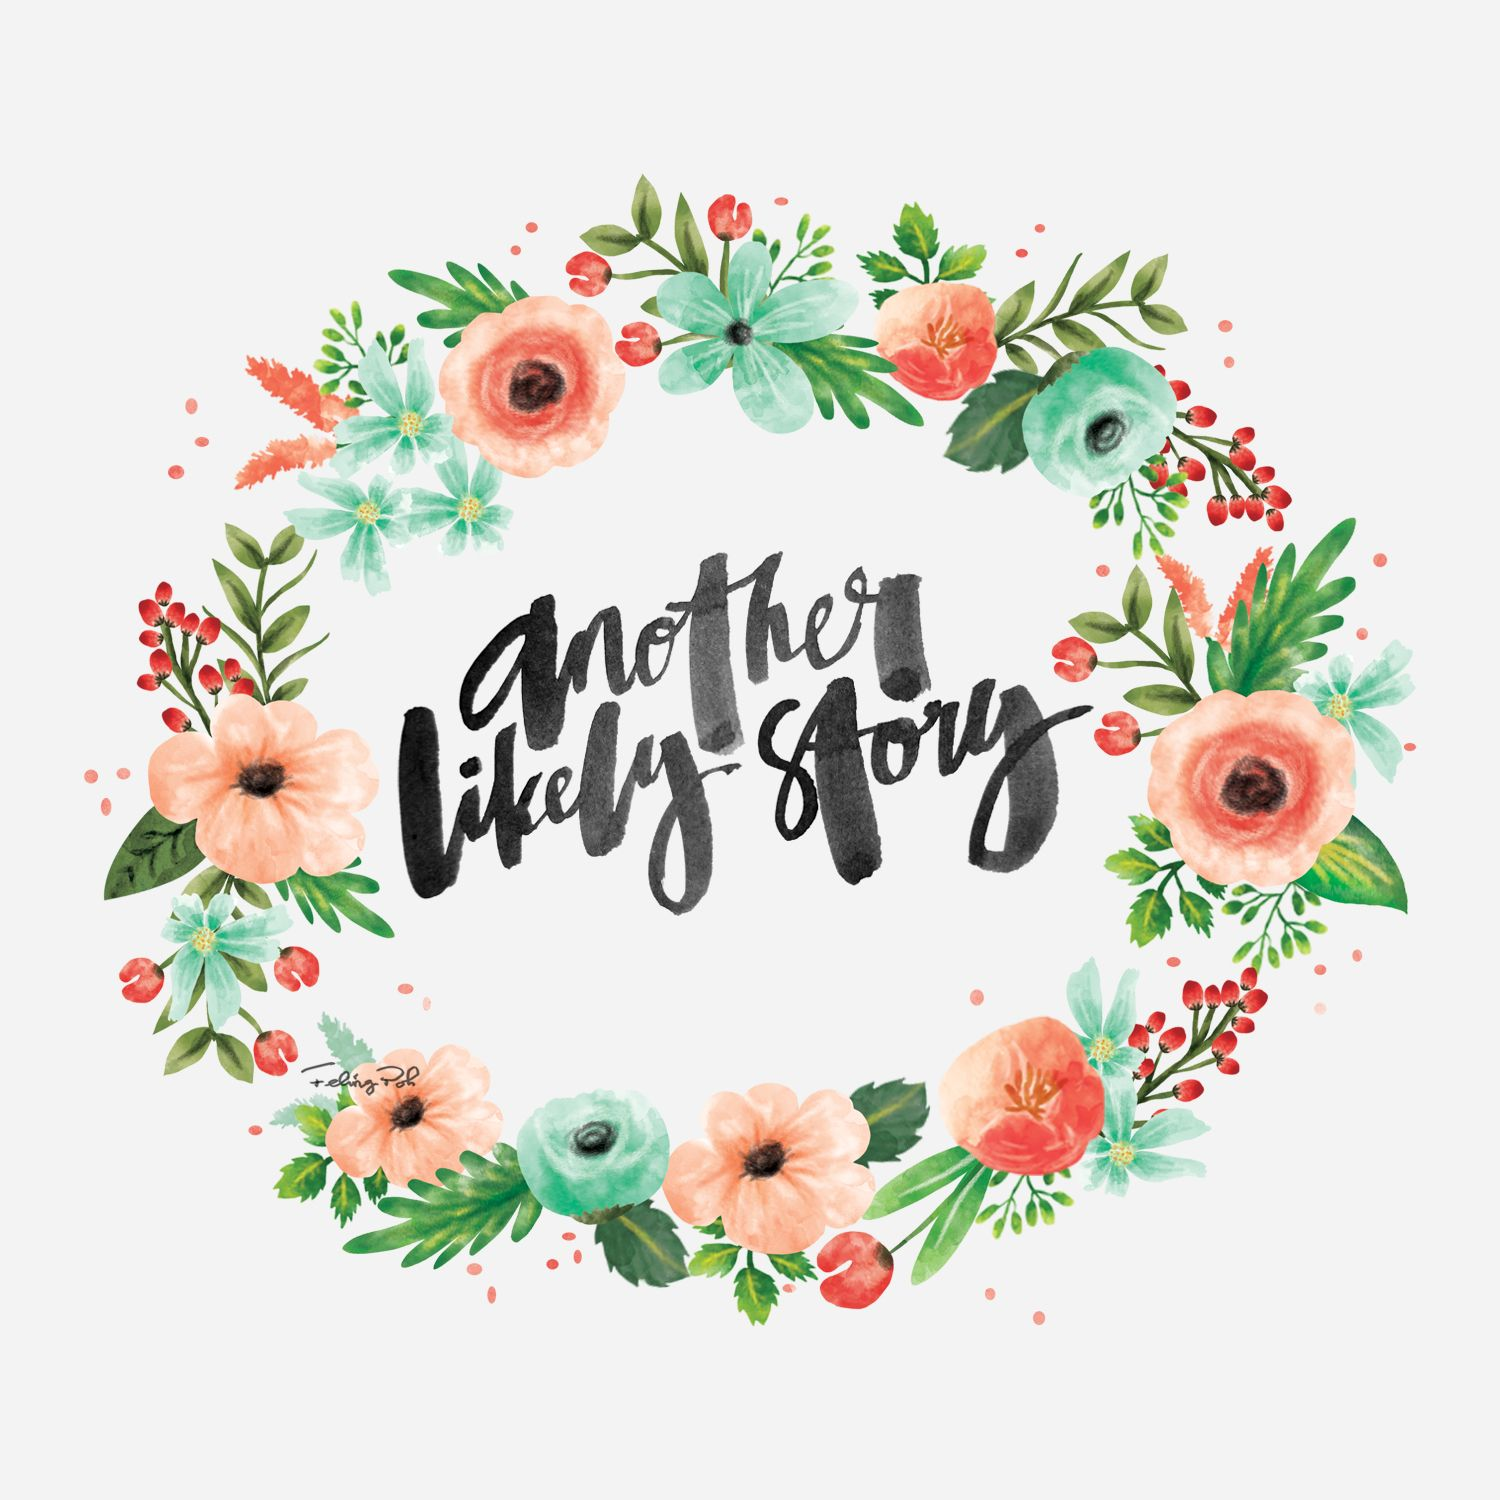 A likely story clipart clipart transparent another likely story. Calligraphy, Lettering, Song Lyrics, Quotes ... clipart transparent